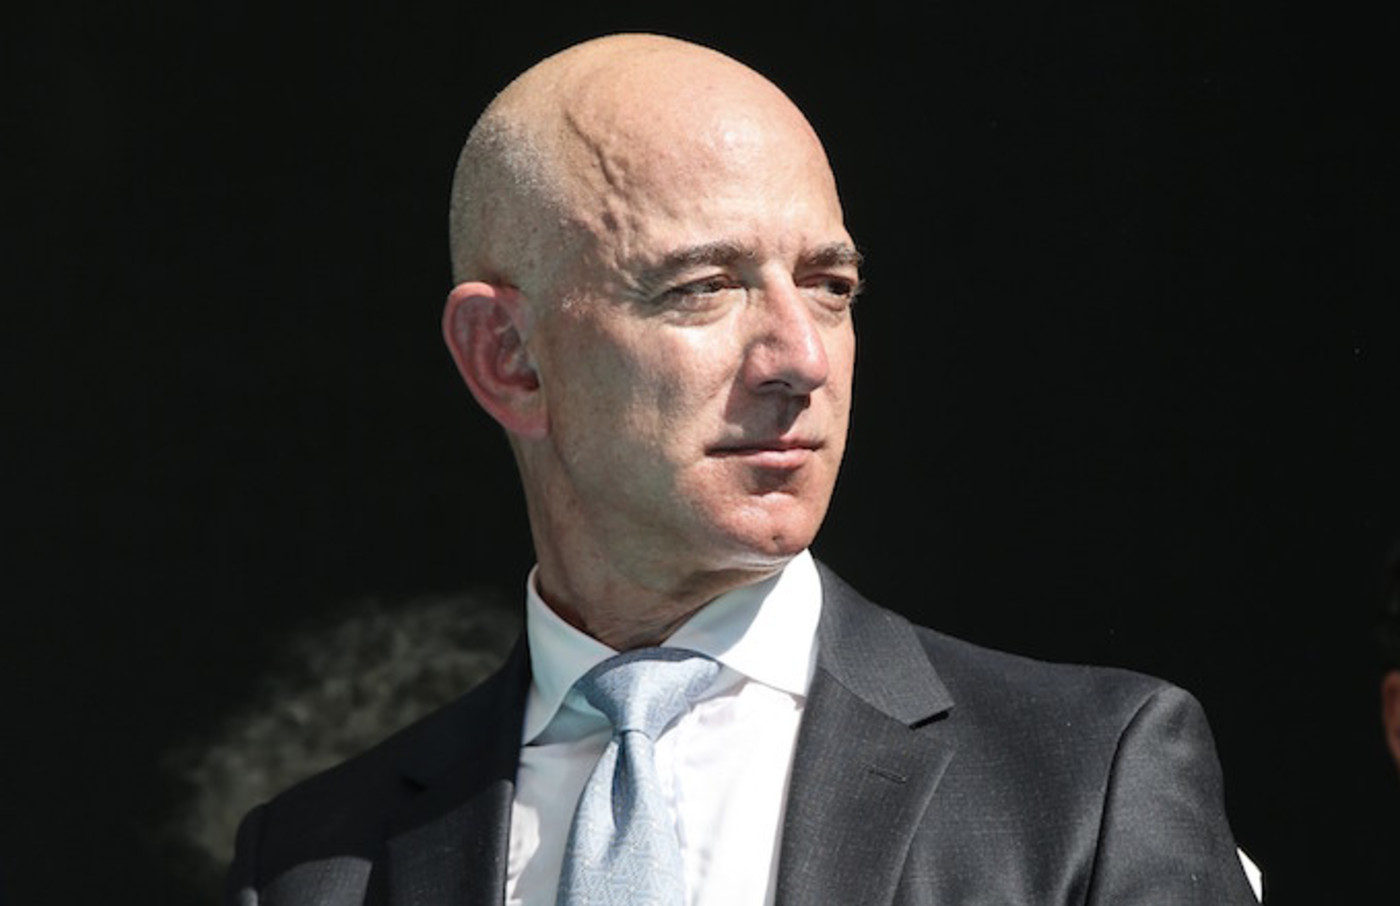 Amazon CEO Jeff Bezos attends commemoration ceremony held in front of Saudi consulate.